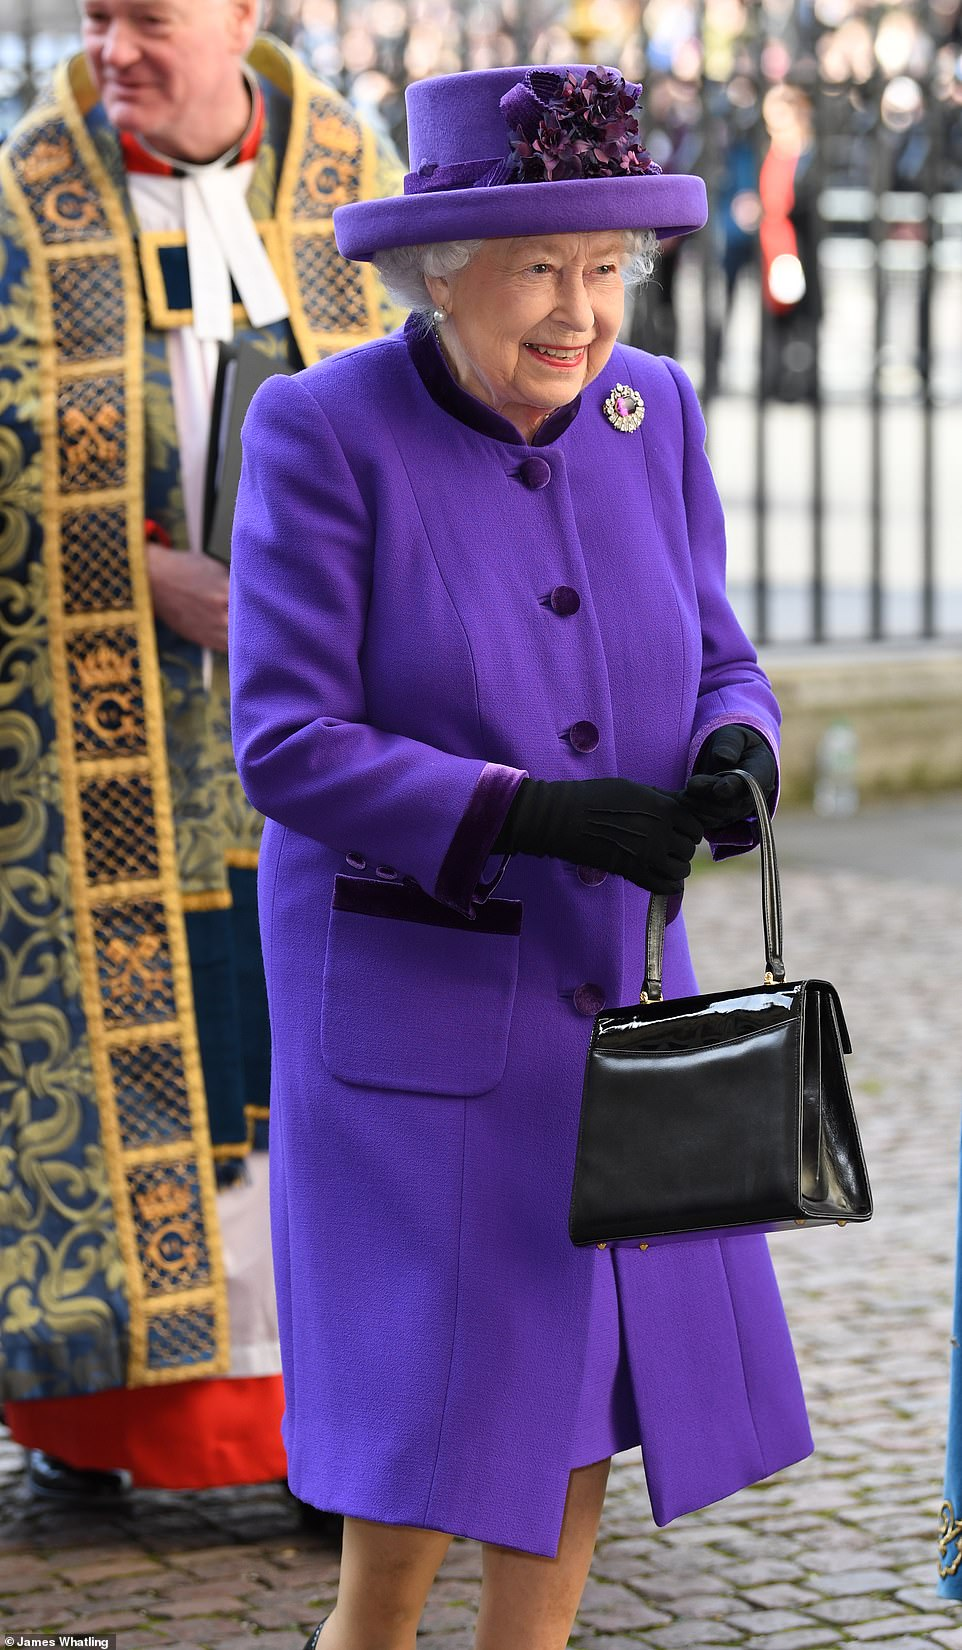 10840522-6795345-The_Queen_opted_for_a_bold_purple_ensemble_as_she_donned_a_match-m-83_1552317775188